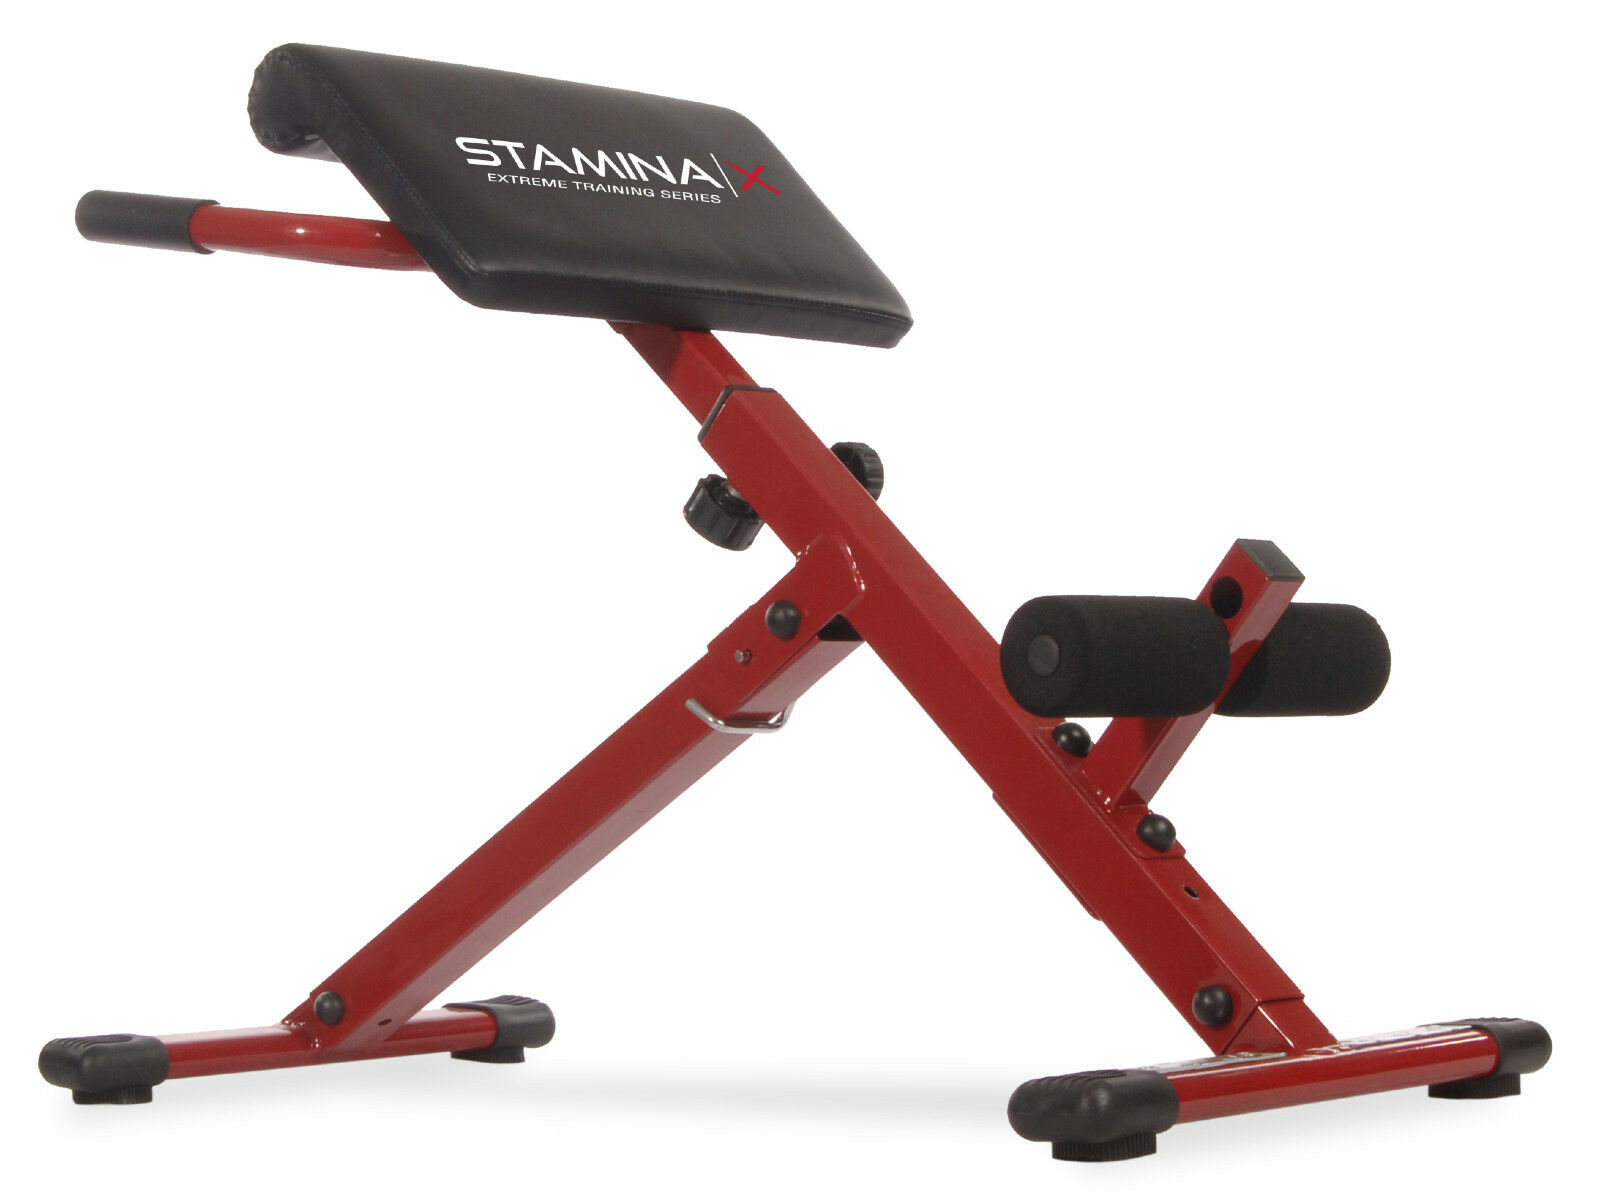 Apex roman chair exercises - Stamina X Hyper Bench Adjustable Abs Back Hyper Extension Exercise Roman Chair